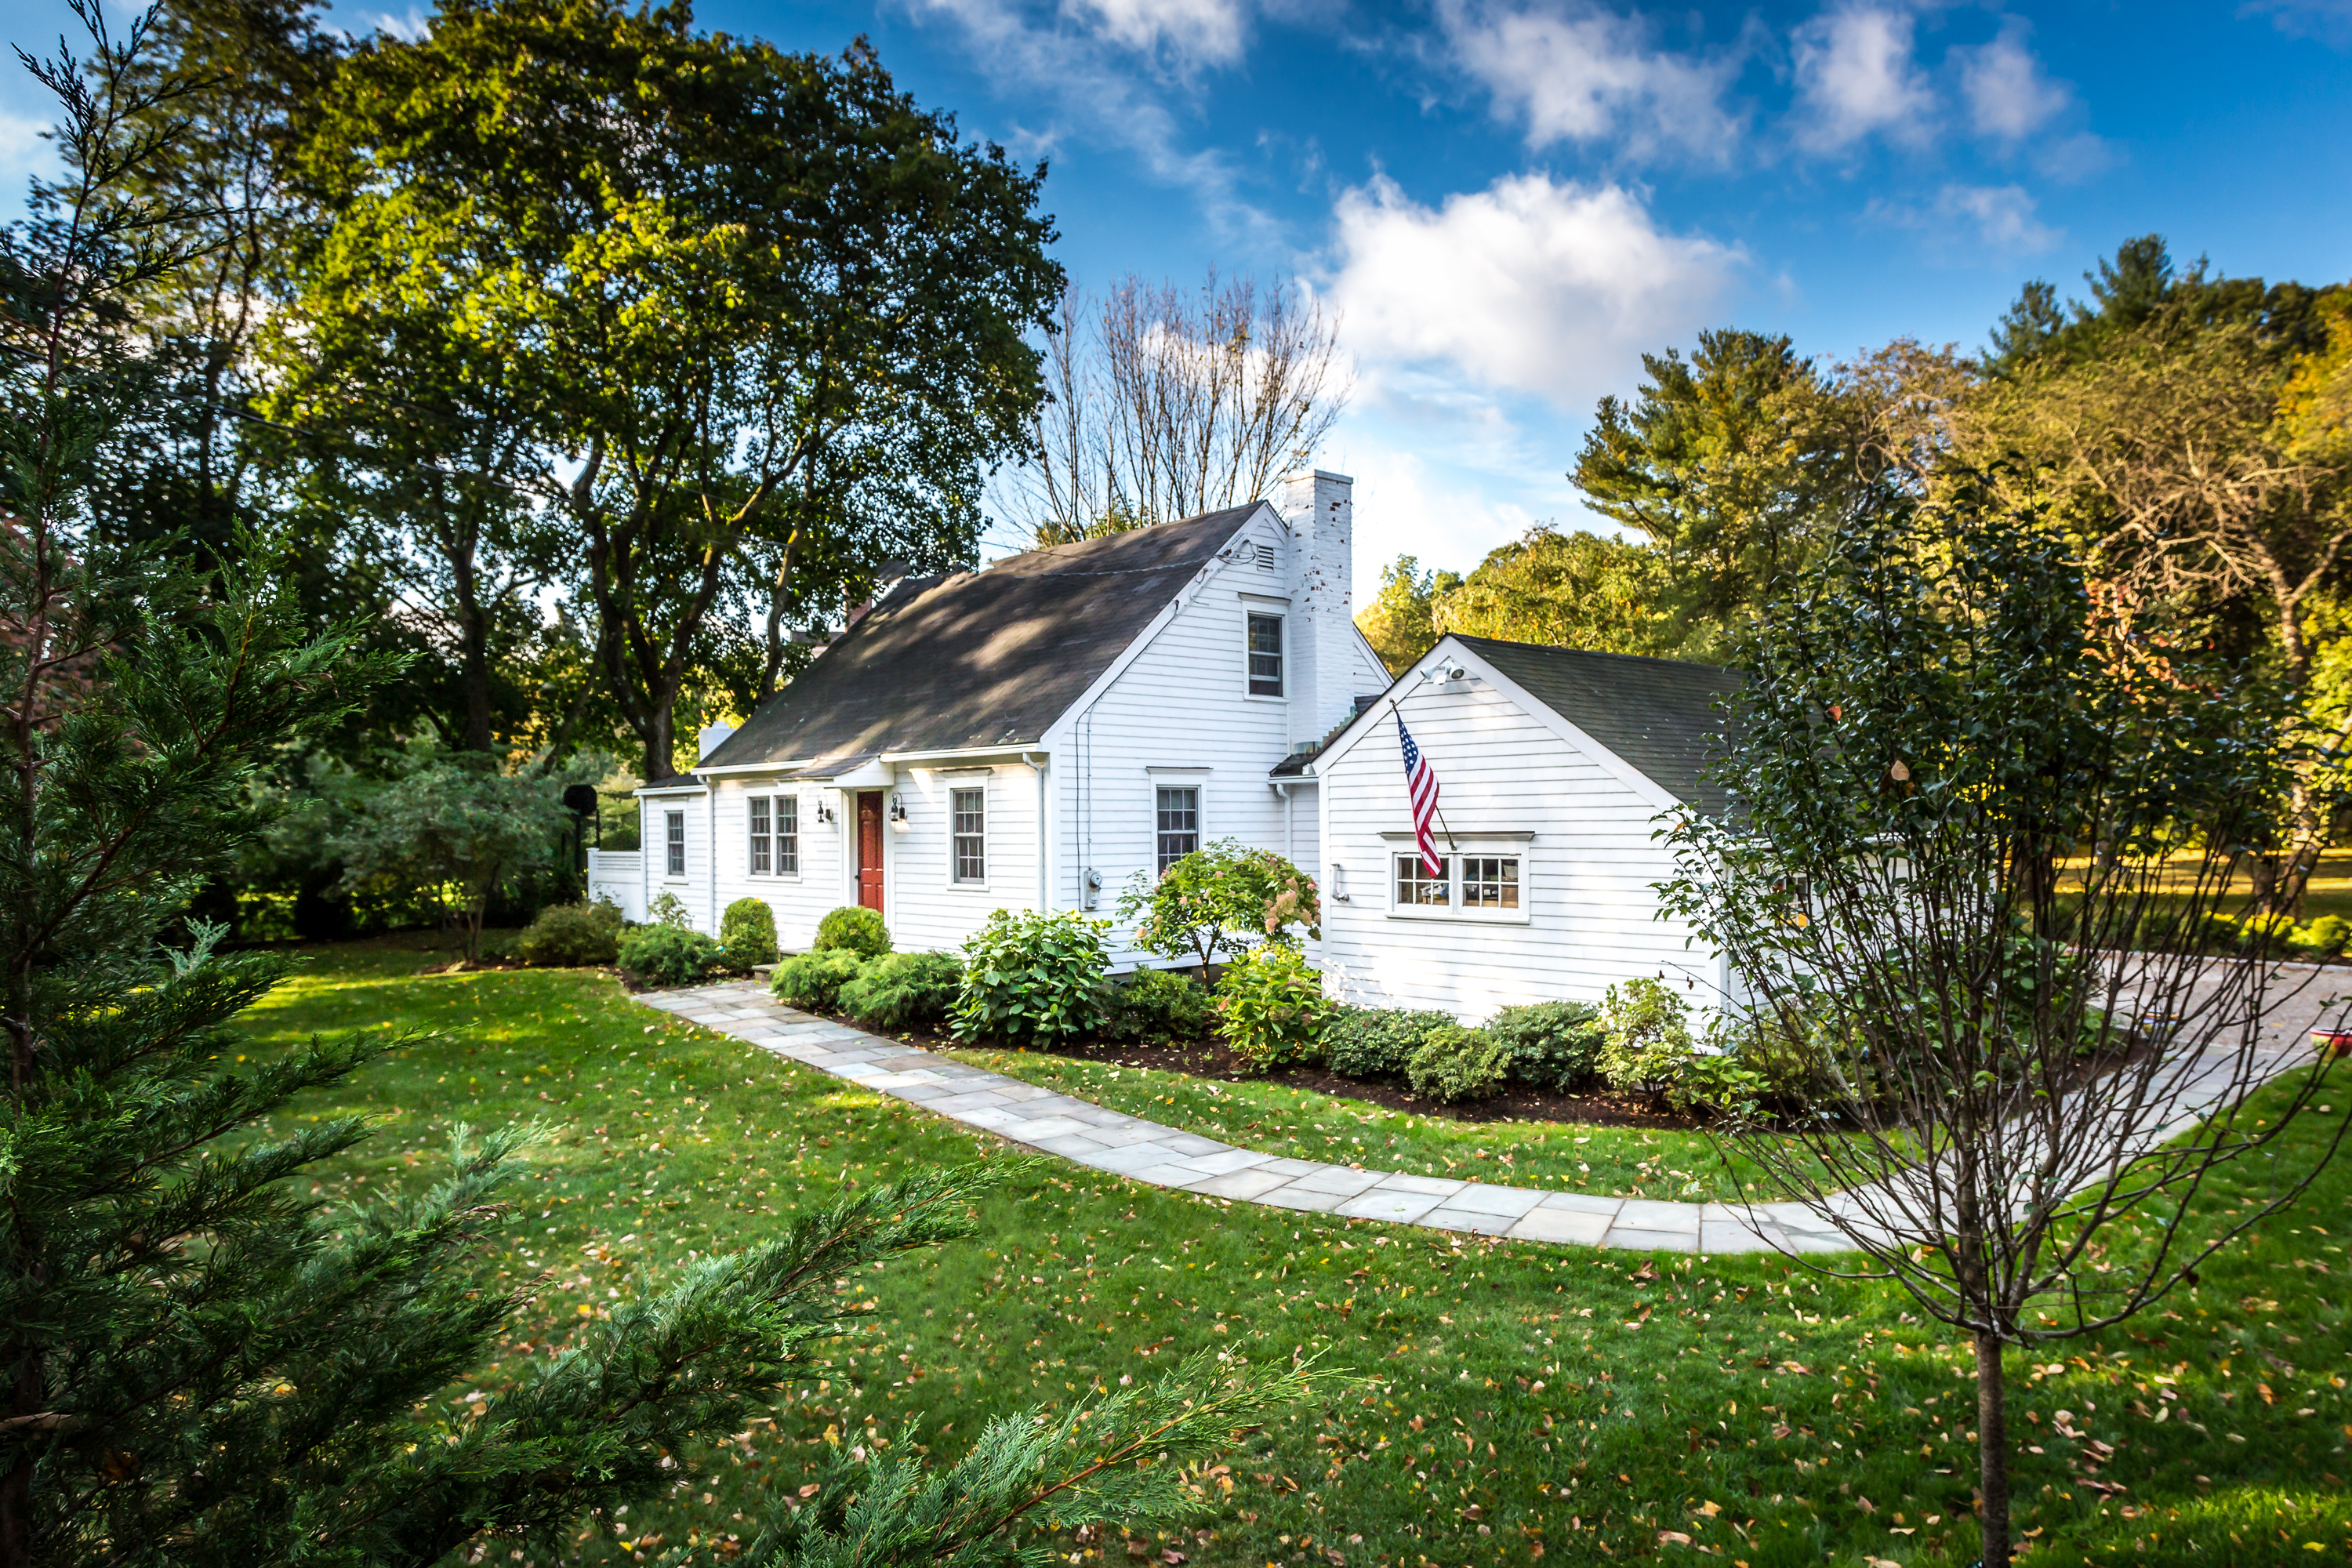 Single Family Home for Sale at Charming Renovated Cape 108 Weed Street New Canaan, Connecticut 06840 United States